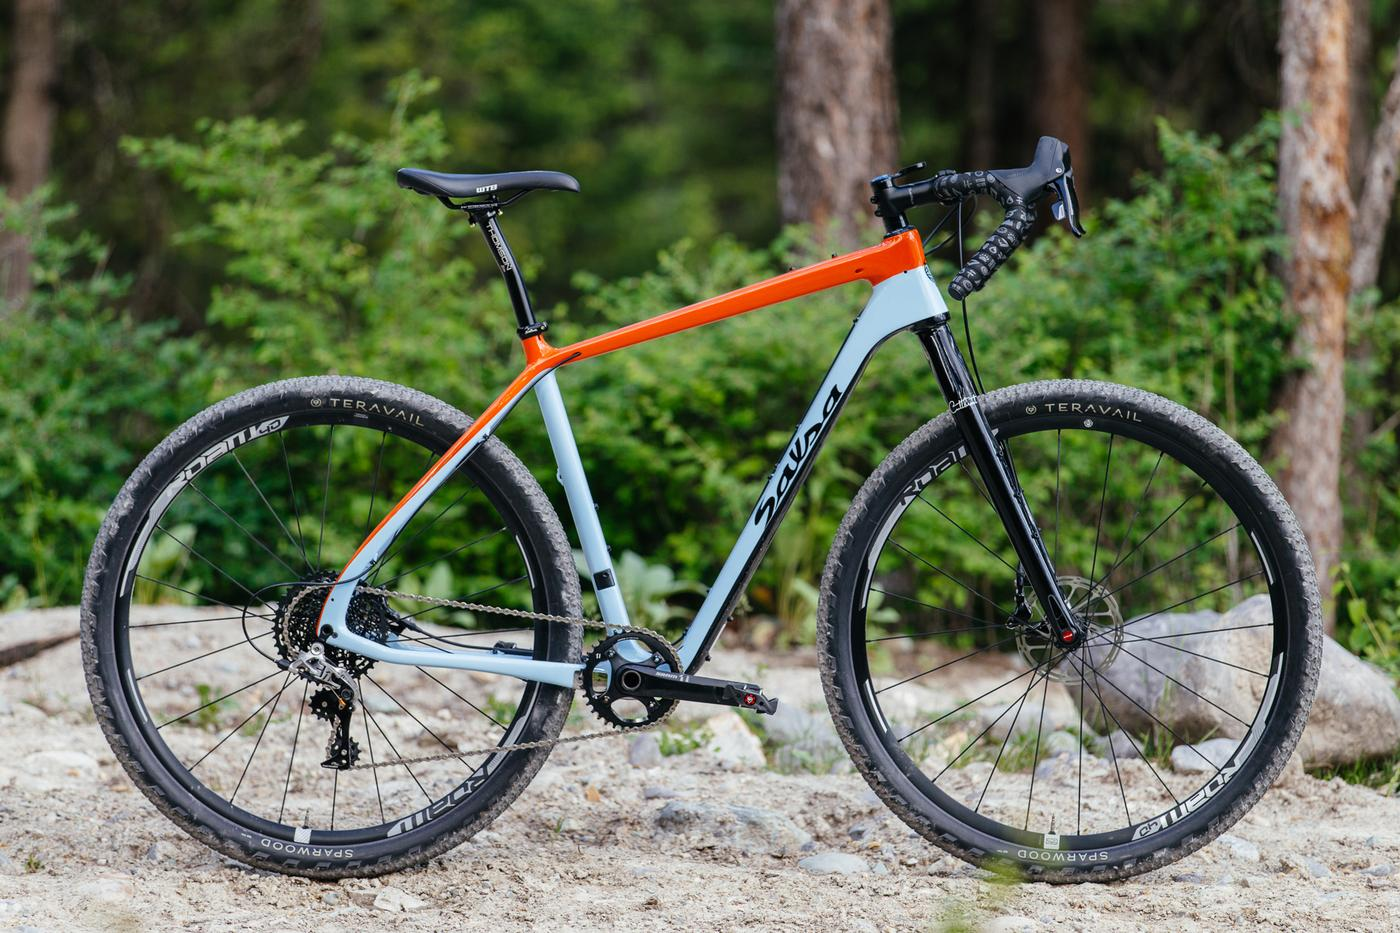 Introducing the Salsa Cycles Cutthroat Tour Divide Bike